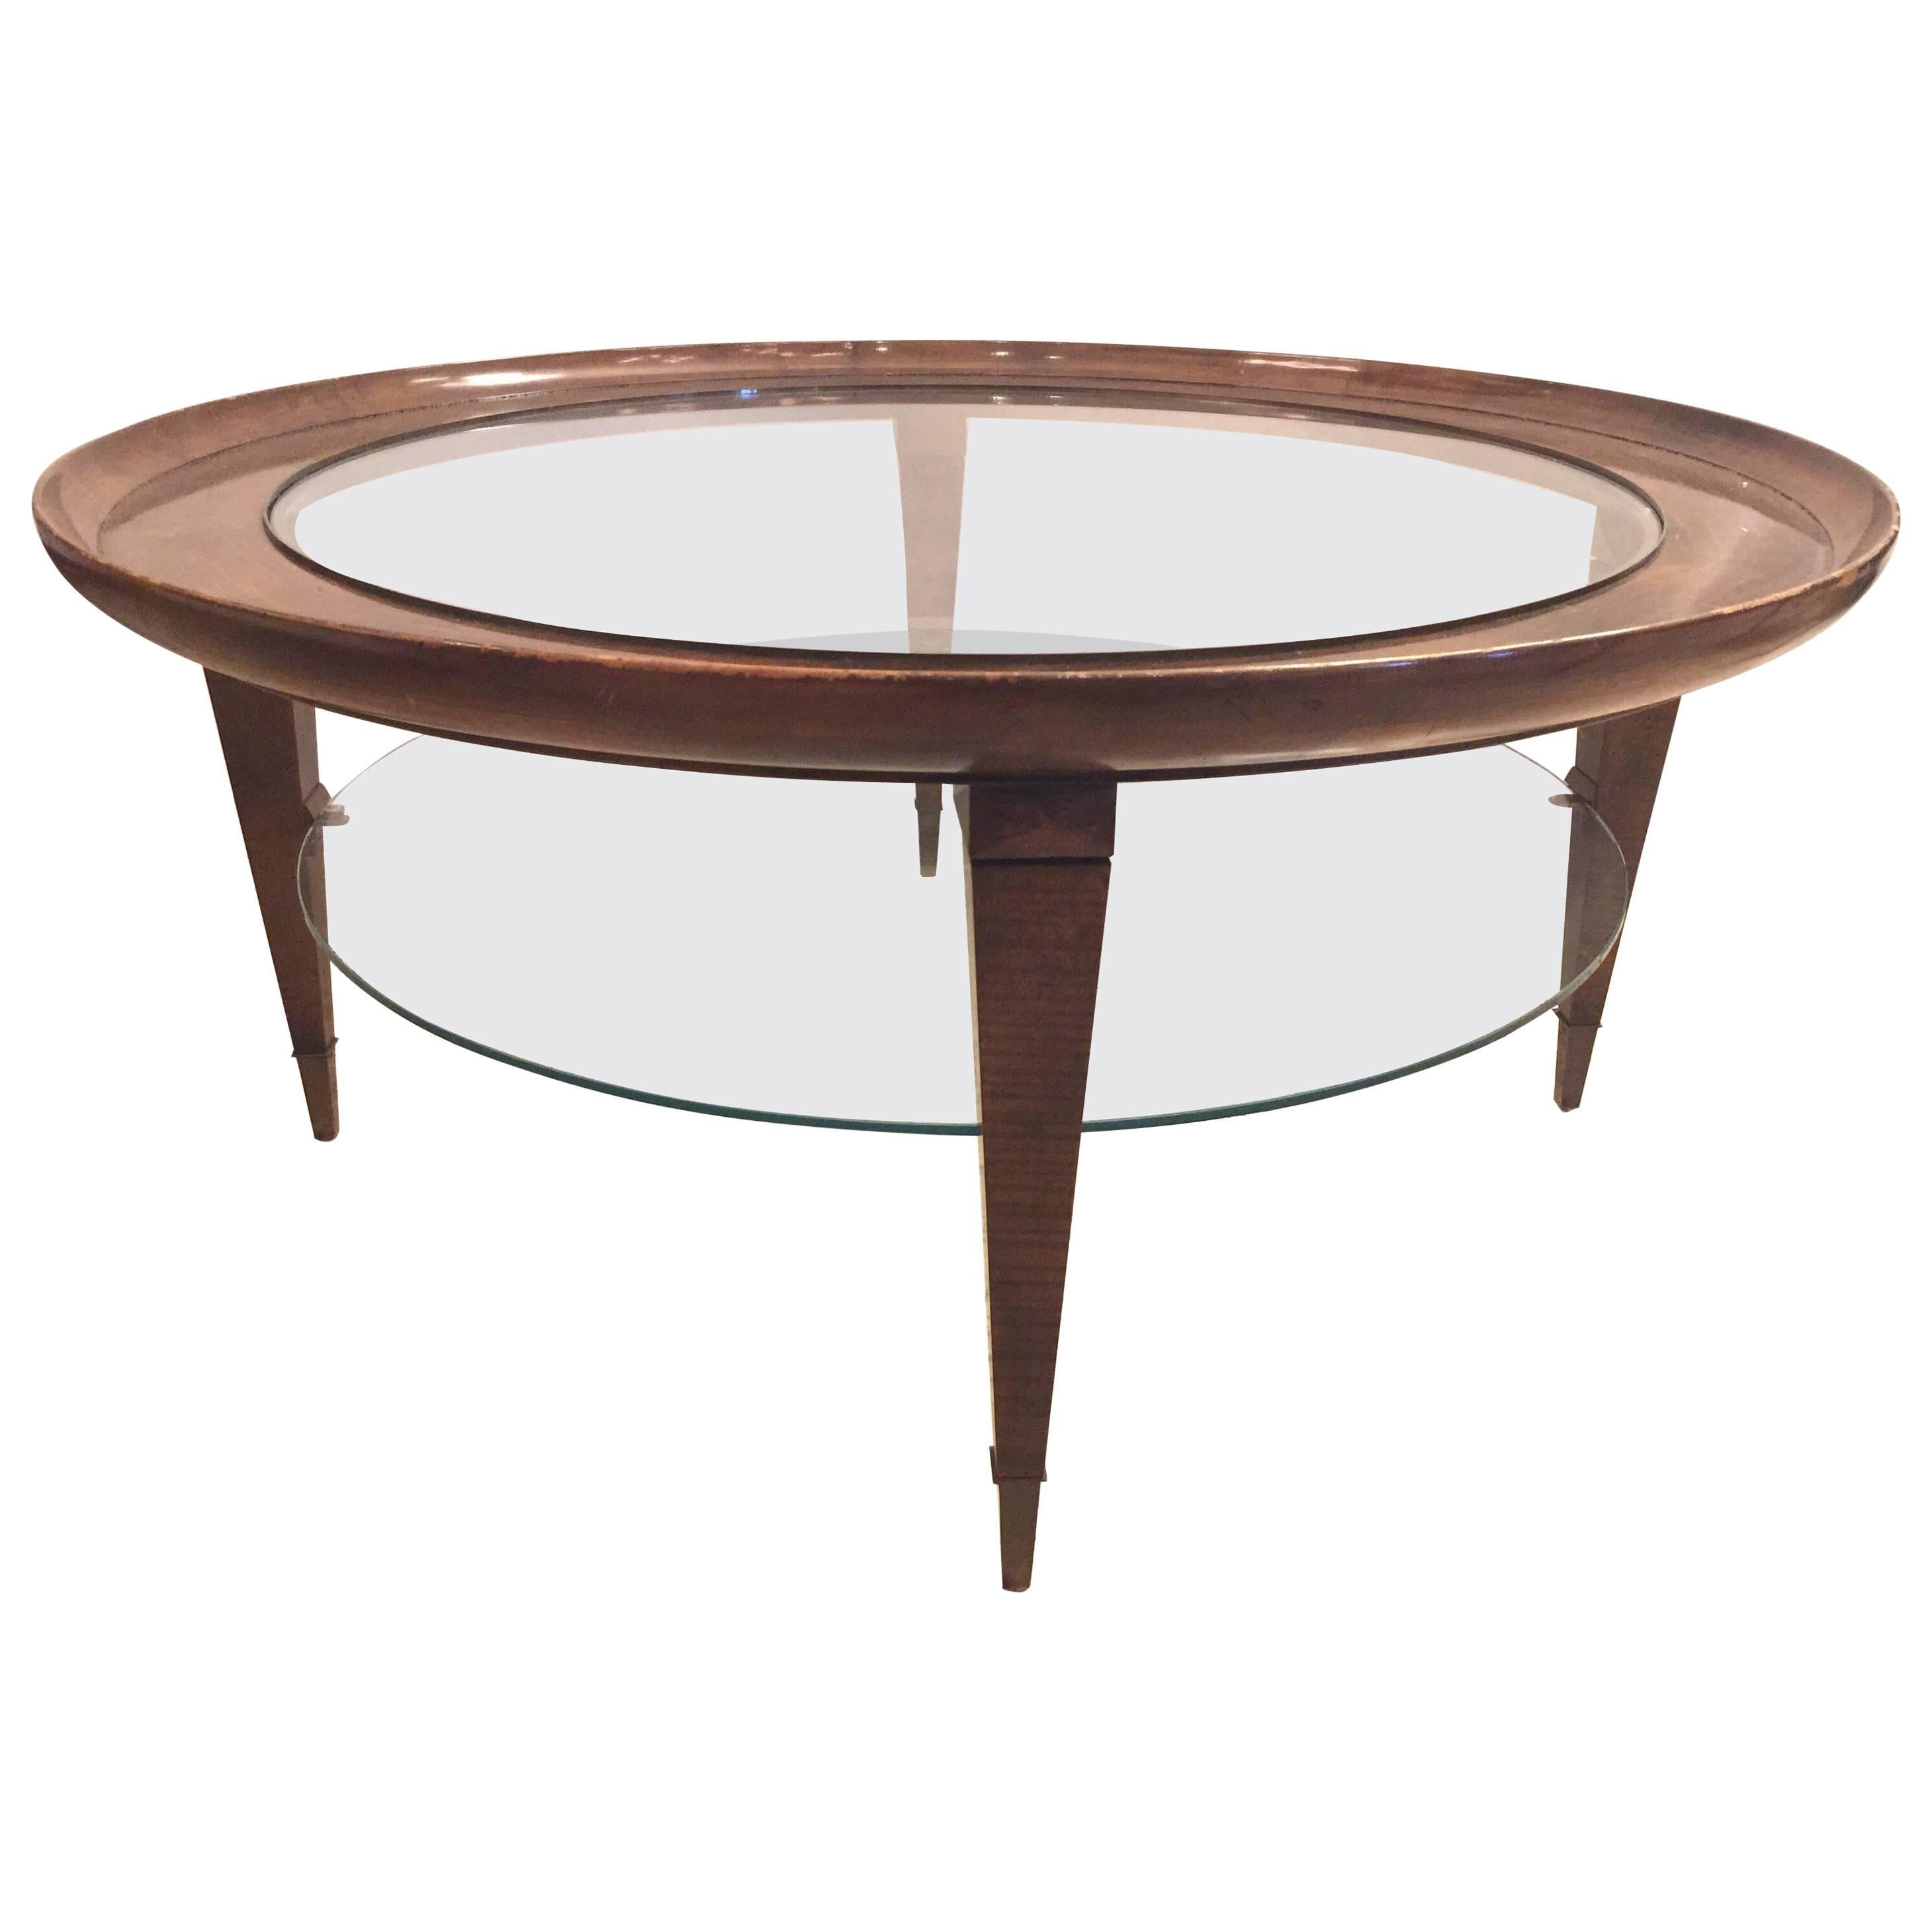 Ponti Style Round Two Tiered Coffee Table